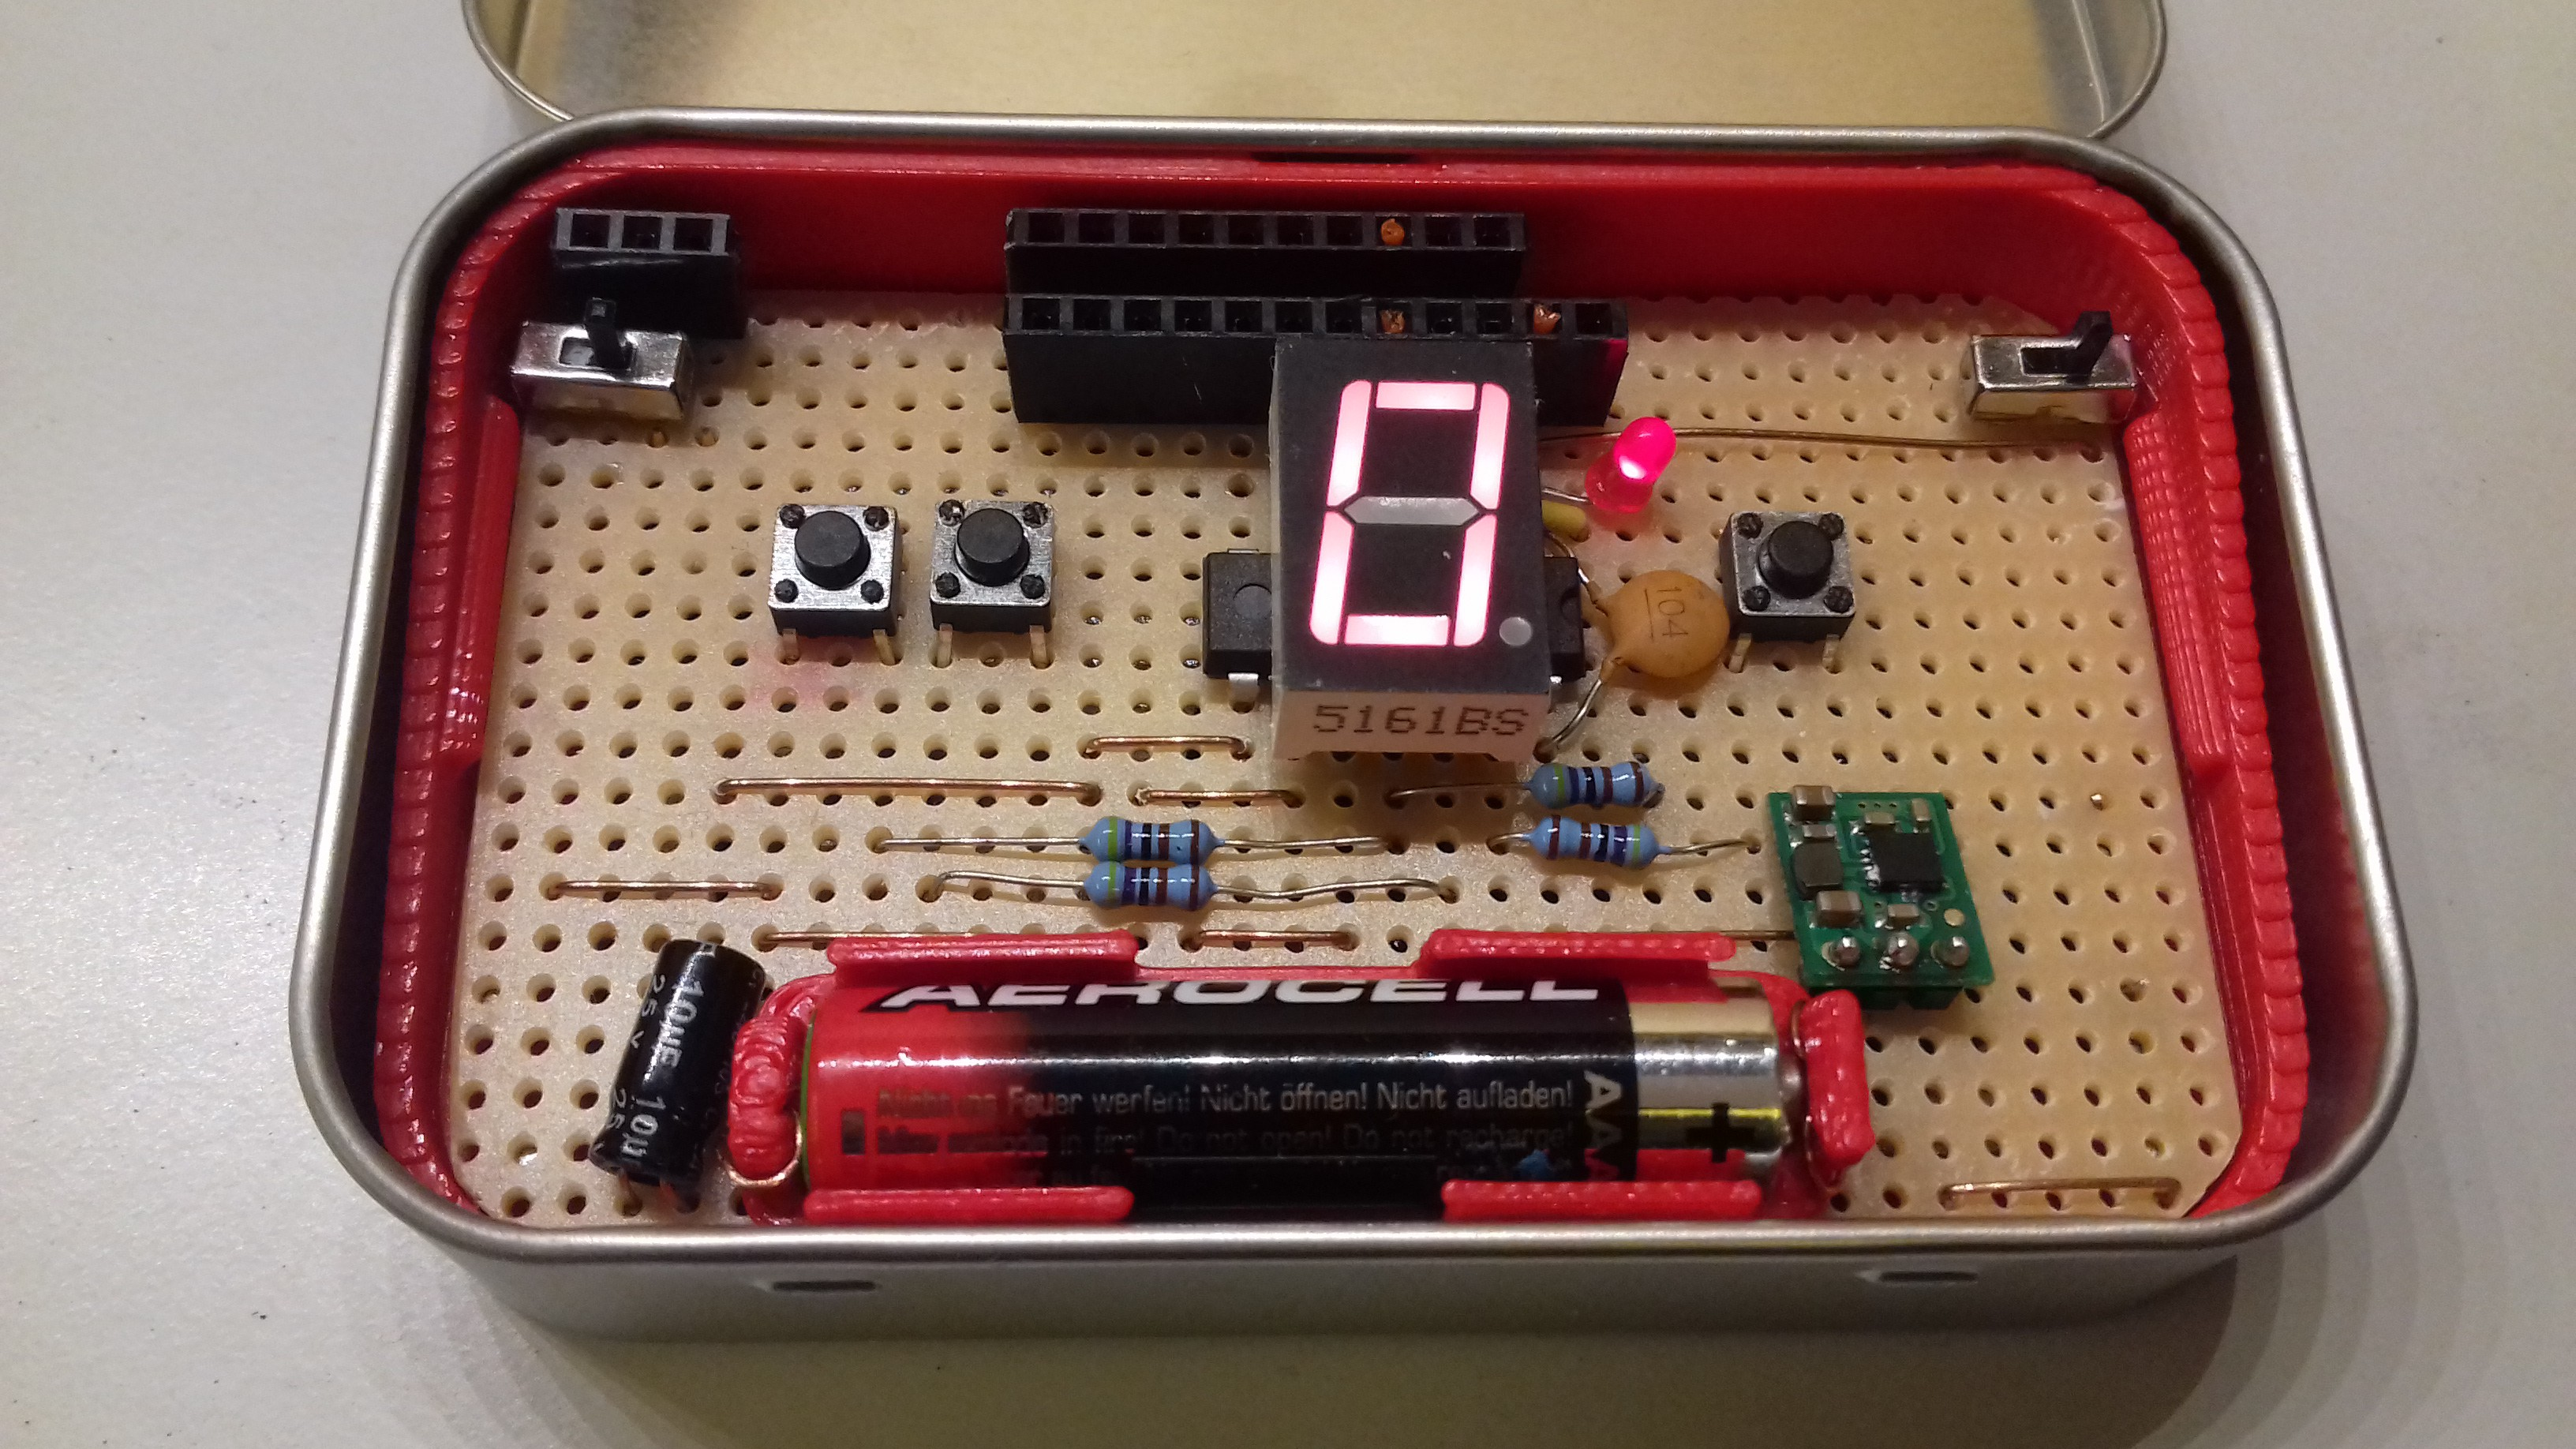 Project Fatcat Altoids Tin Mod Tracker Diy Pcb How To Create Your Printed Circuit Board O Hackadayio As Discussed Previously The Major Change With This Build Is That Ive Hidden Speaker Below I Also Added An Extra Pin Header Top Left For